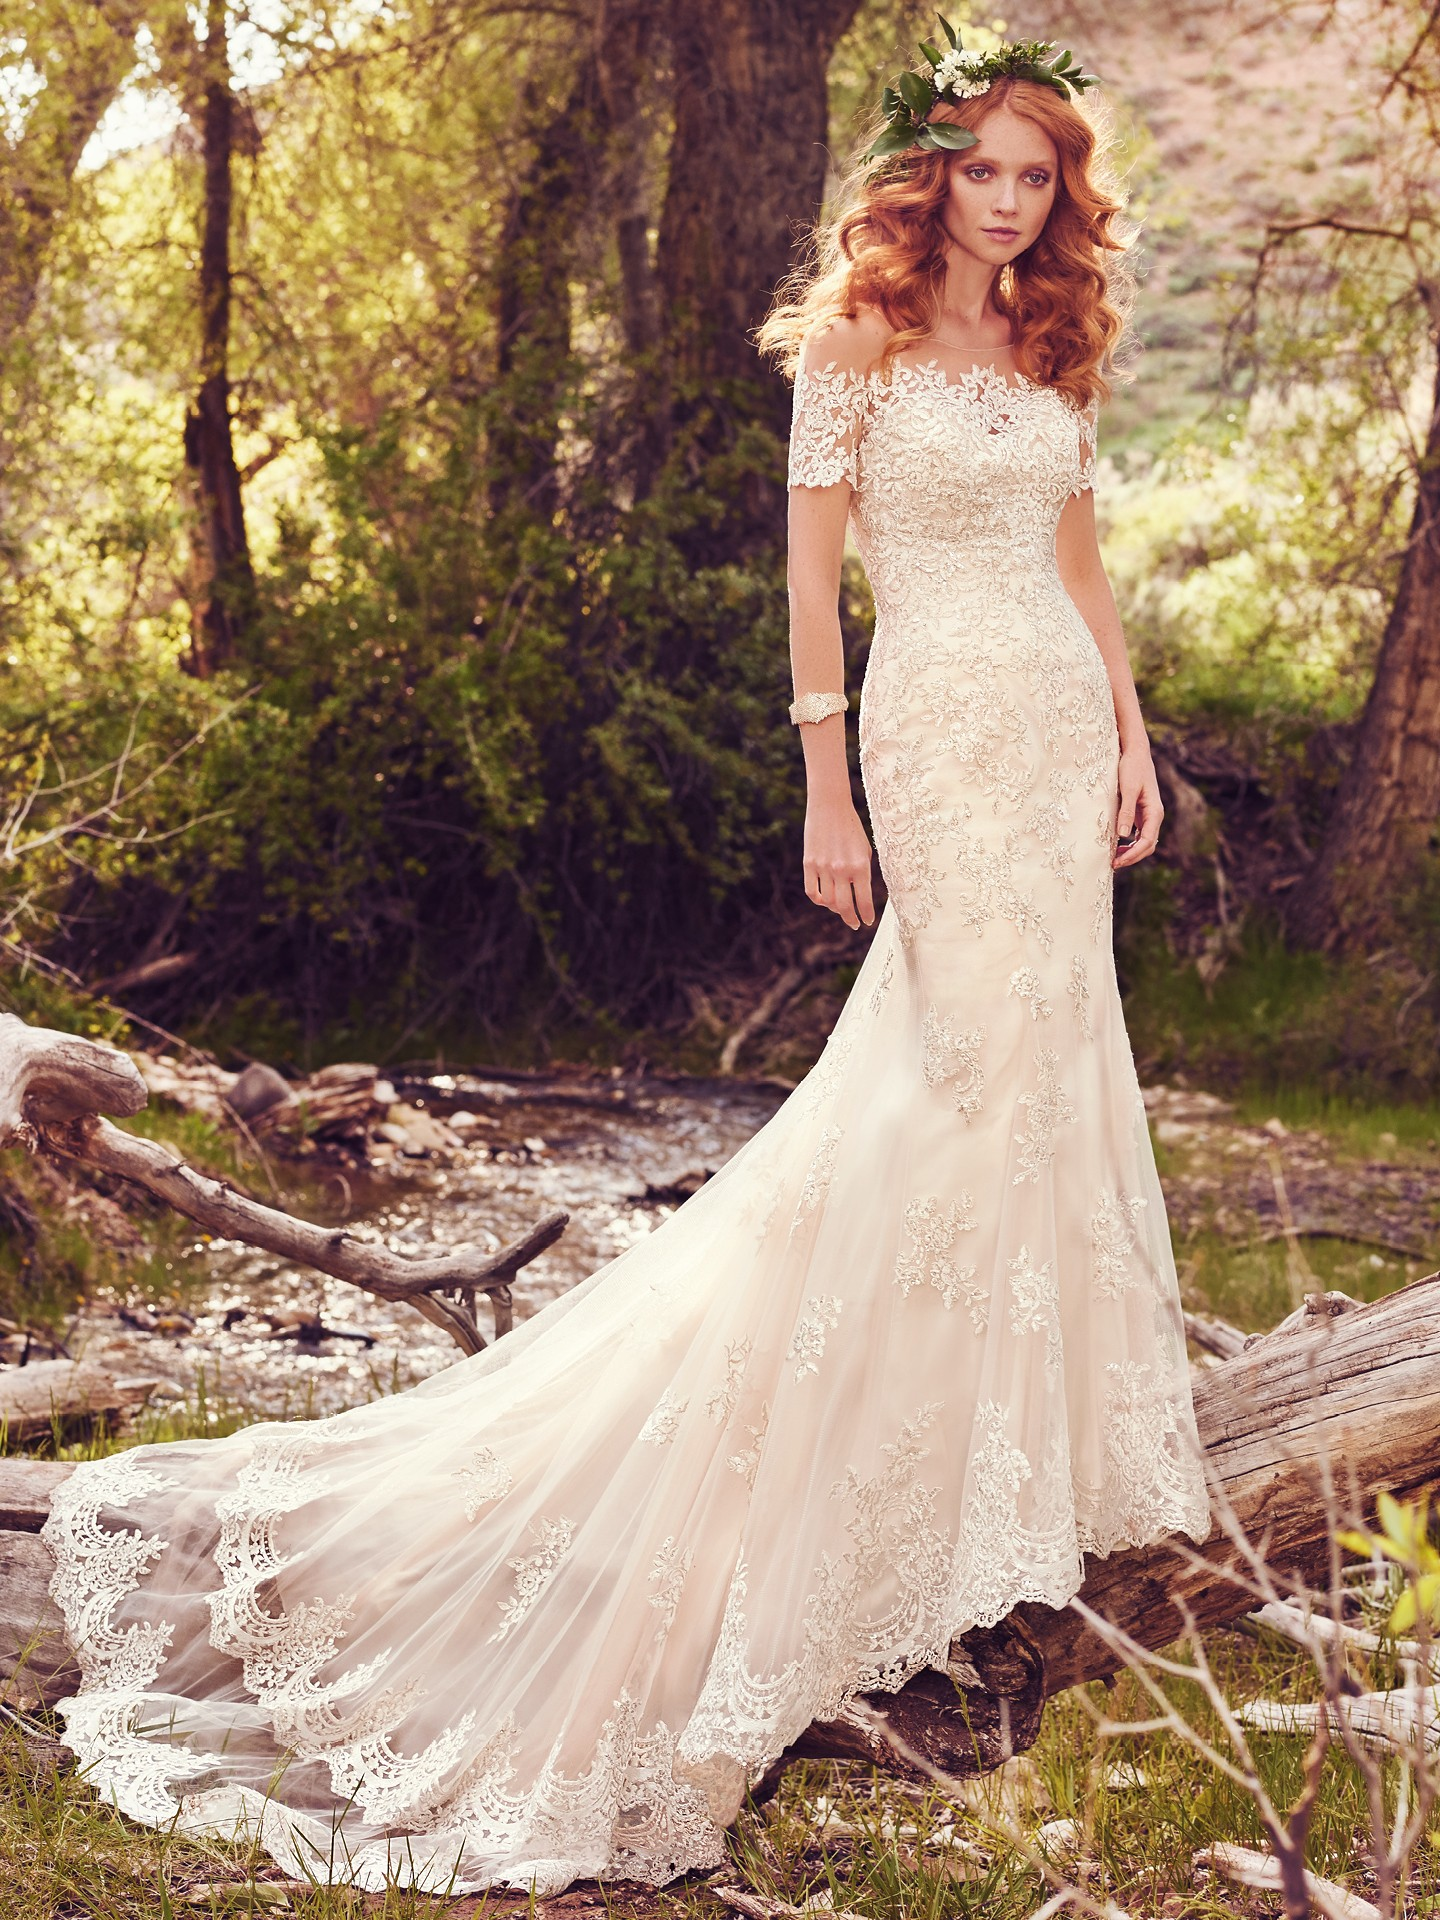 This romantic A-line features a bodice of embellished lace appliqués and an allover lace and tulle skirt - Reynold wedding dress by Rebecca Ingram